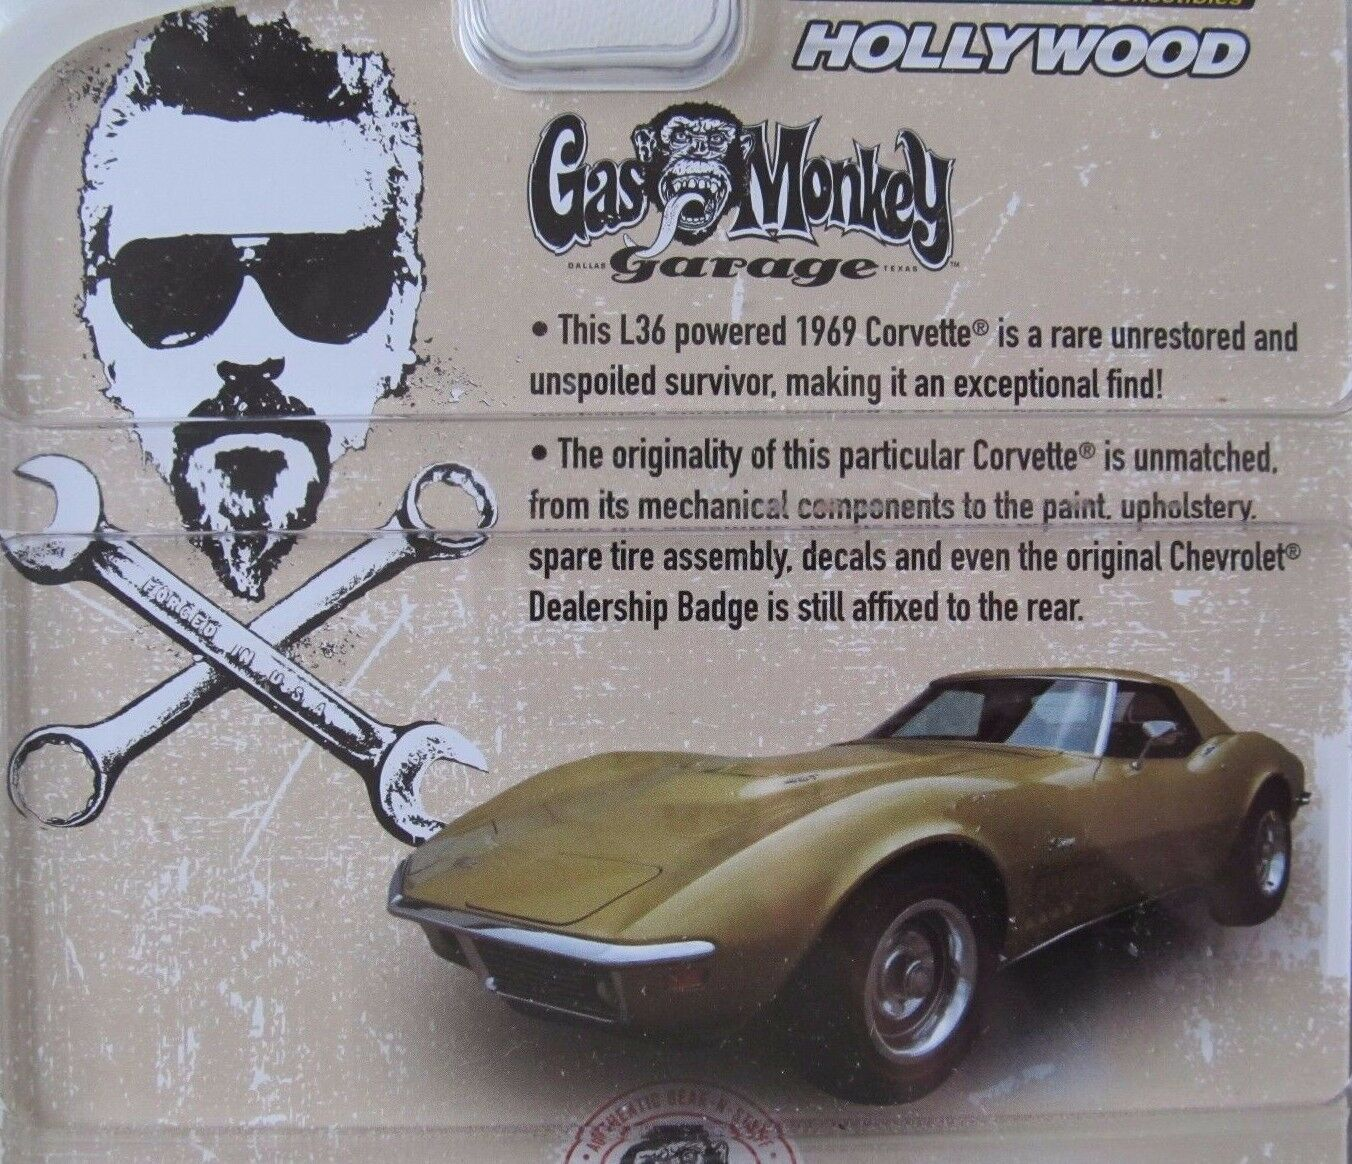 Gas Monkey Garage 1969 Chevrolet Corvette verdelight verdelight verdelight Hollywood serie 12 1 64 66e62a